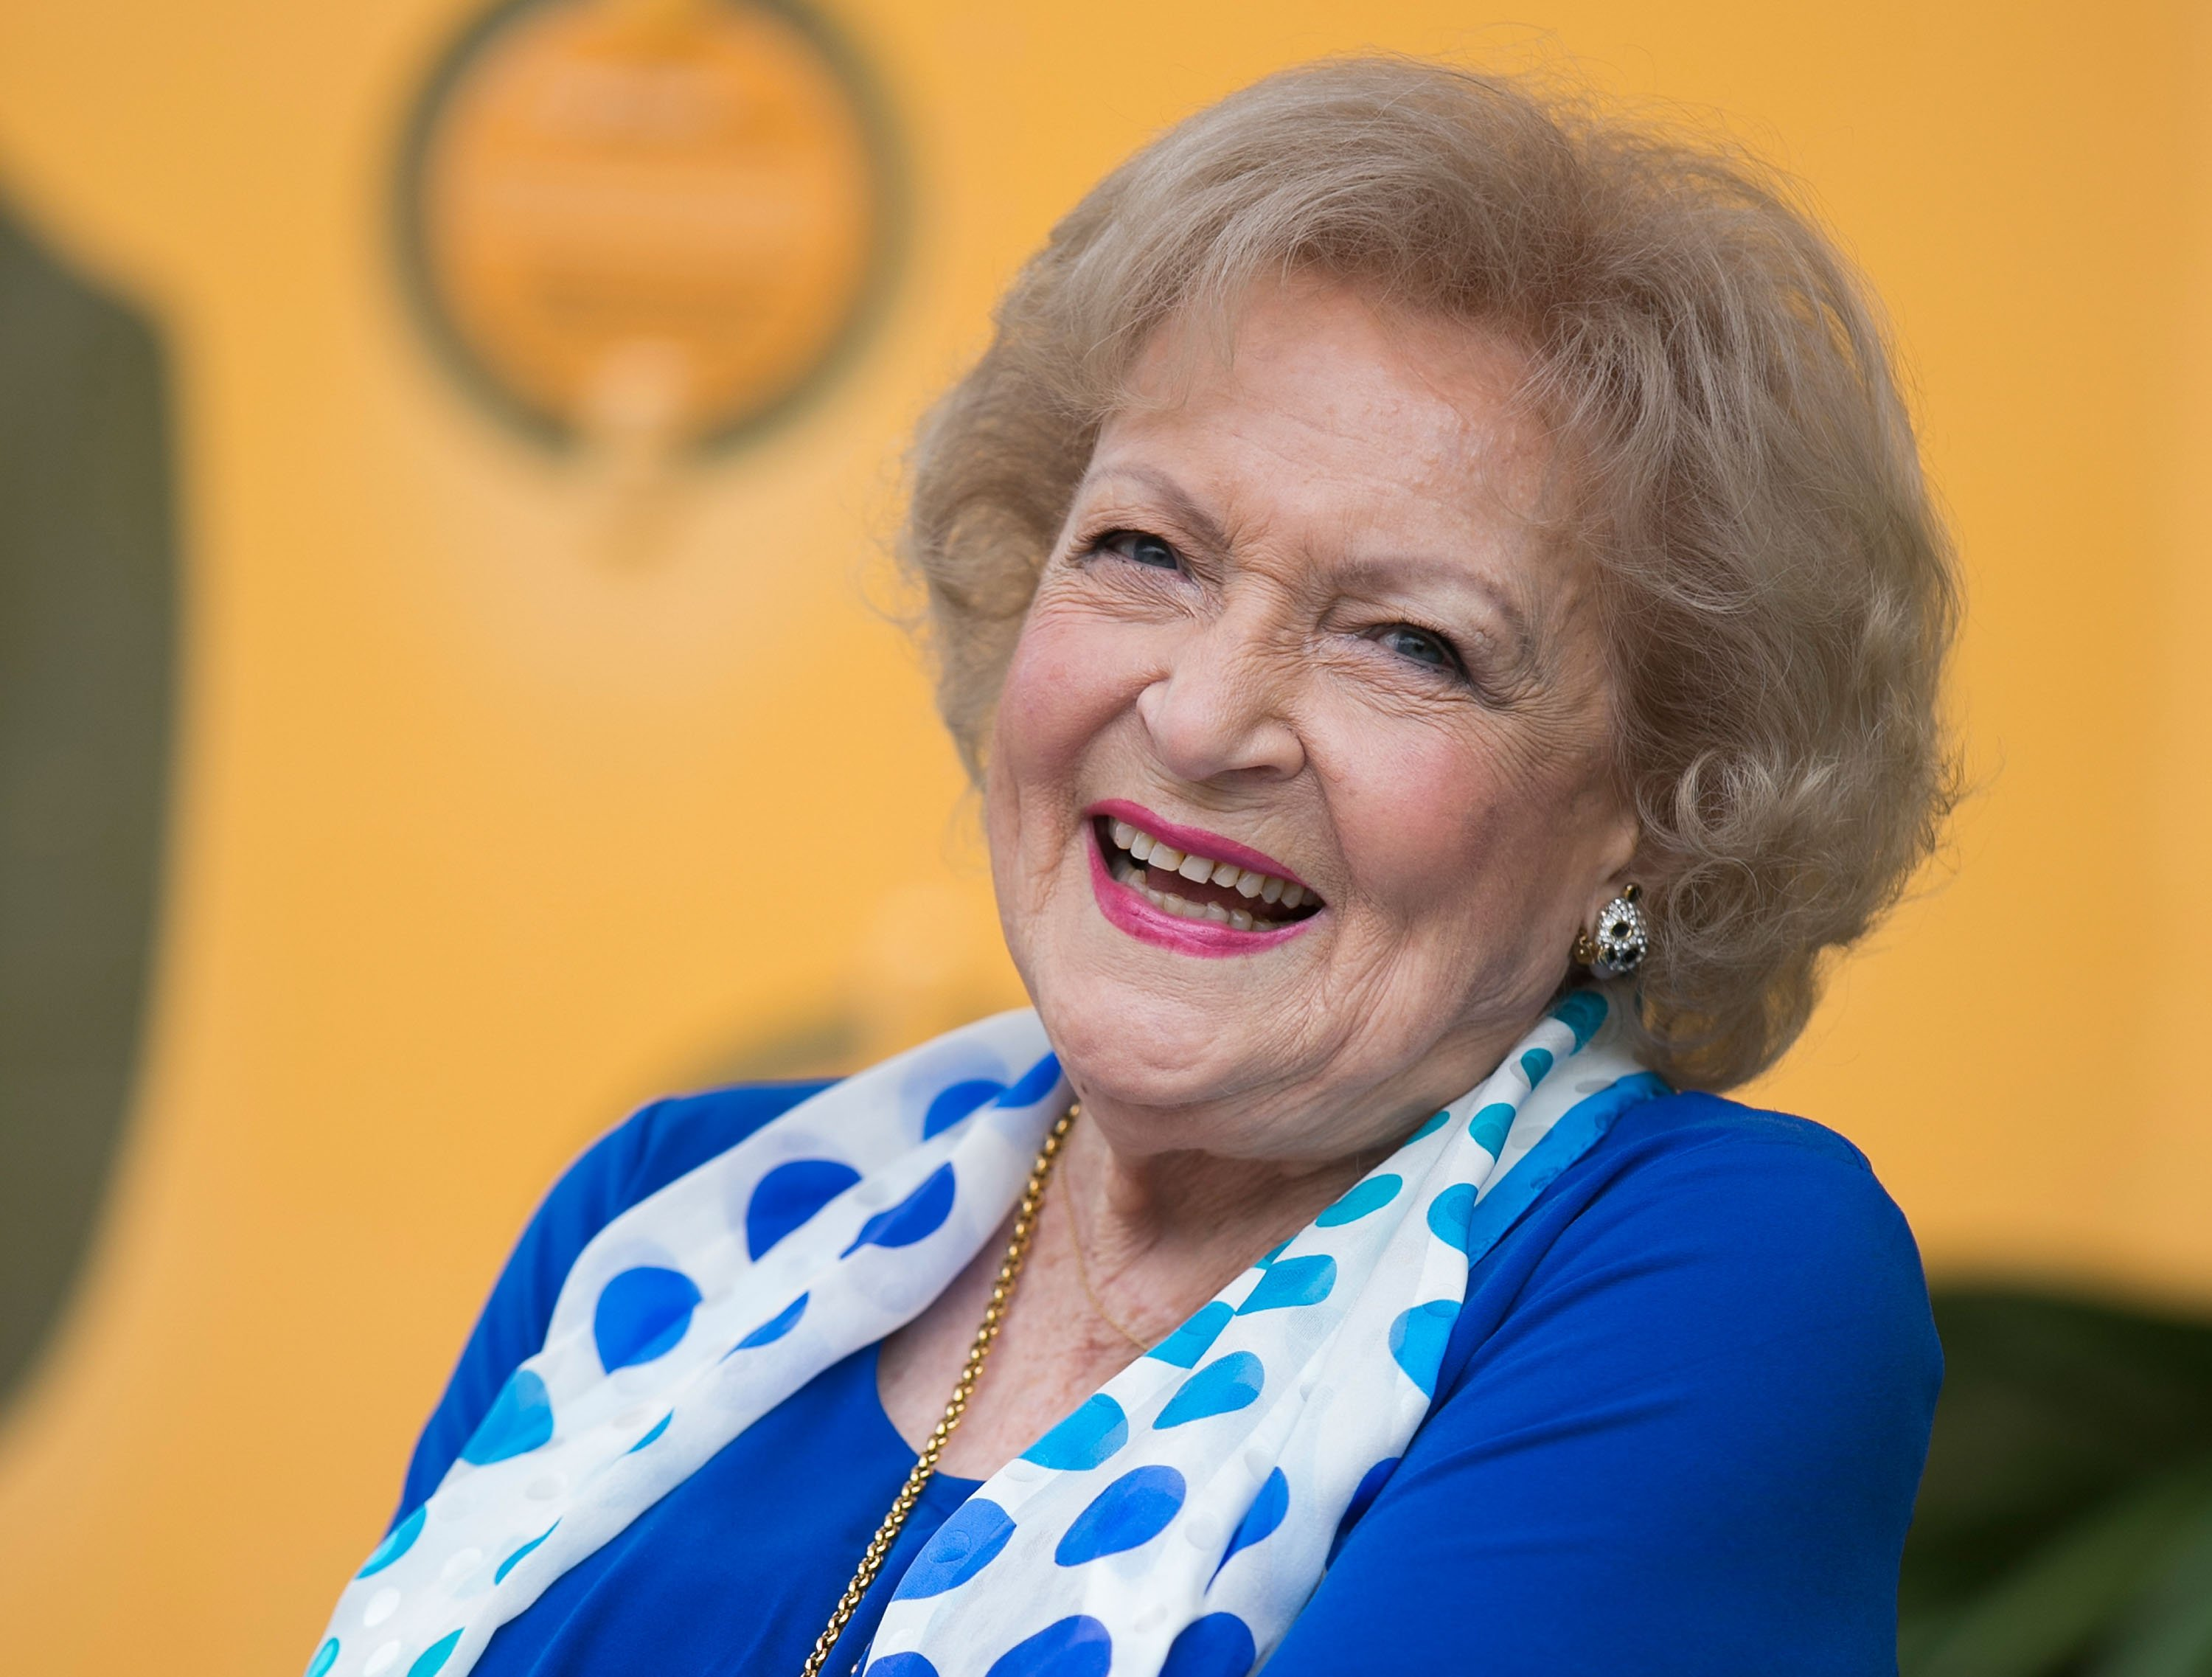 Betty White attends the media preview for Greater Los Angeles Zoo Association's Beastly Ball fundraiser at Los Angeles Zoo on June 11, 2015 in Los Angeles, California | Photo: Getty Images